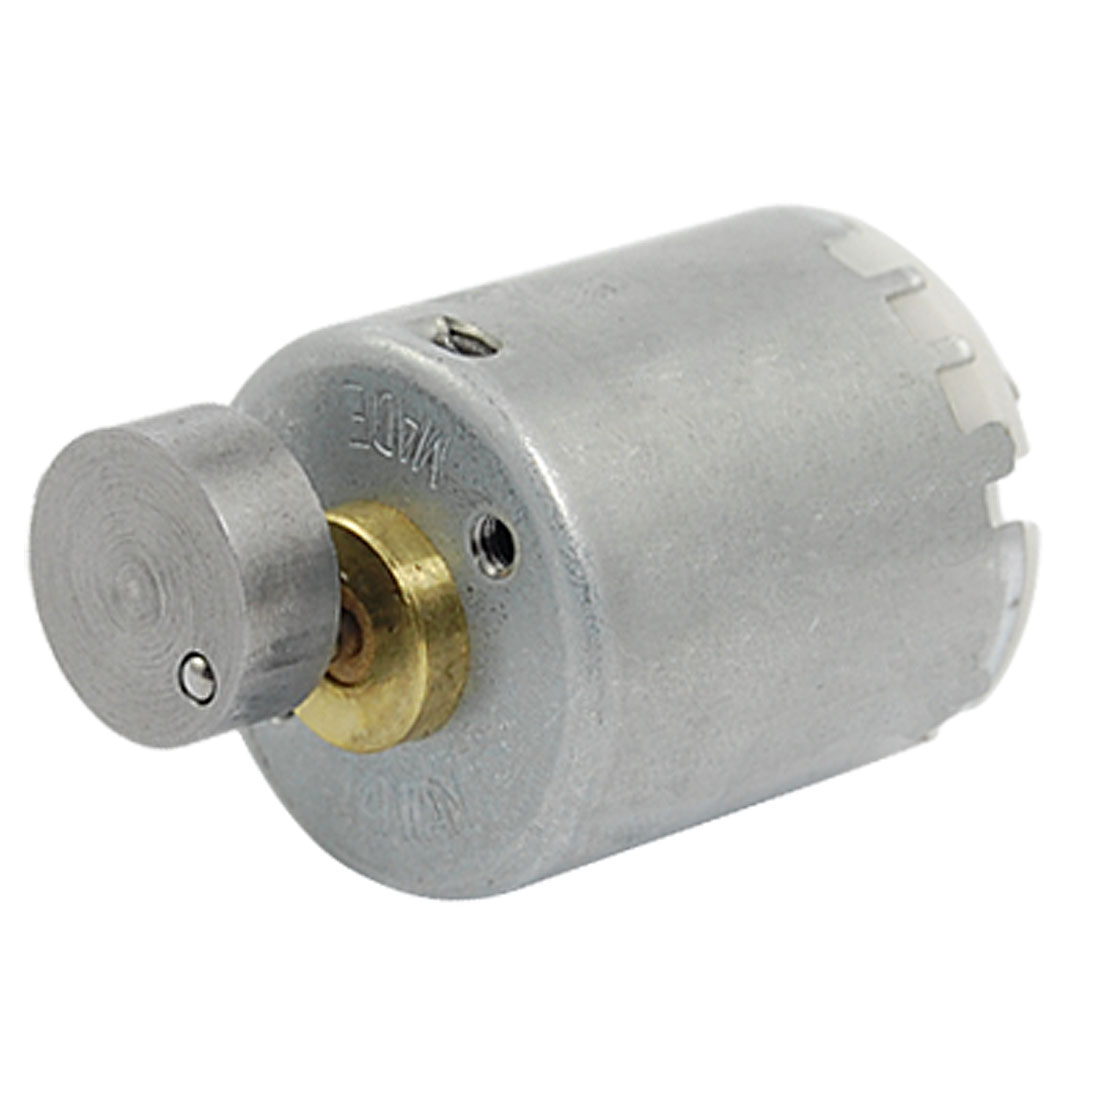 DC-6V-9000RPM-Output-Speed-0-06A-Micro-Vibration-Motor